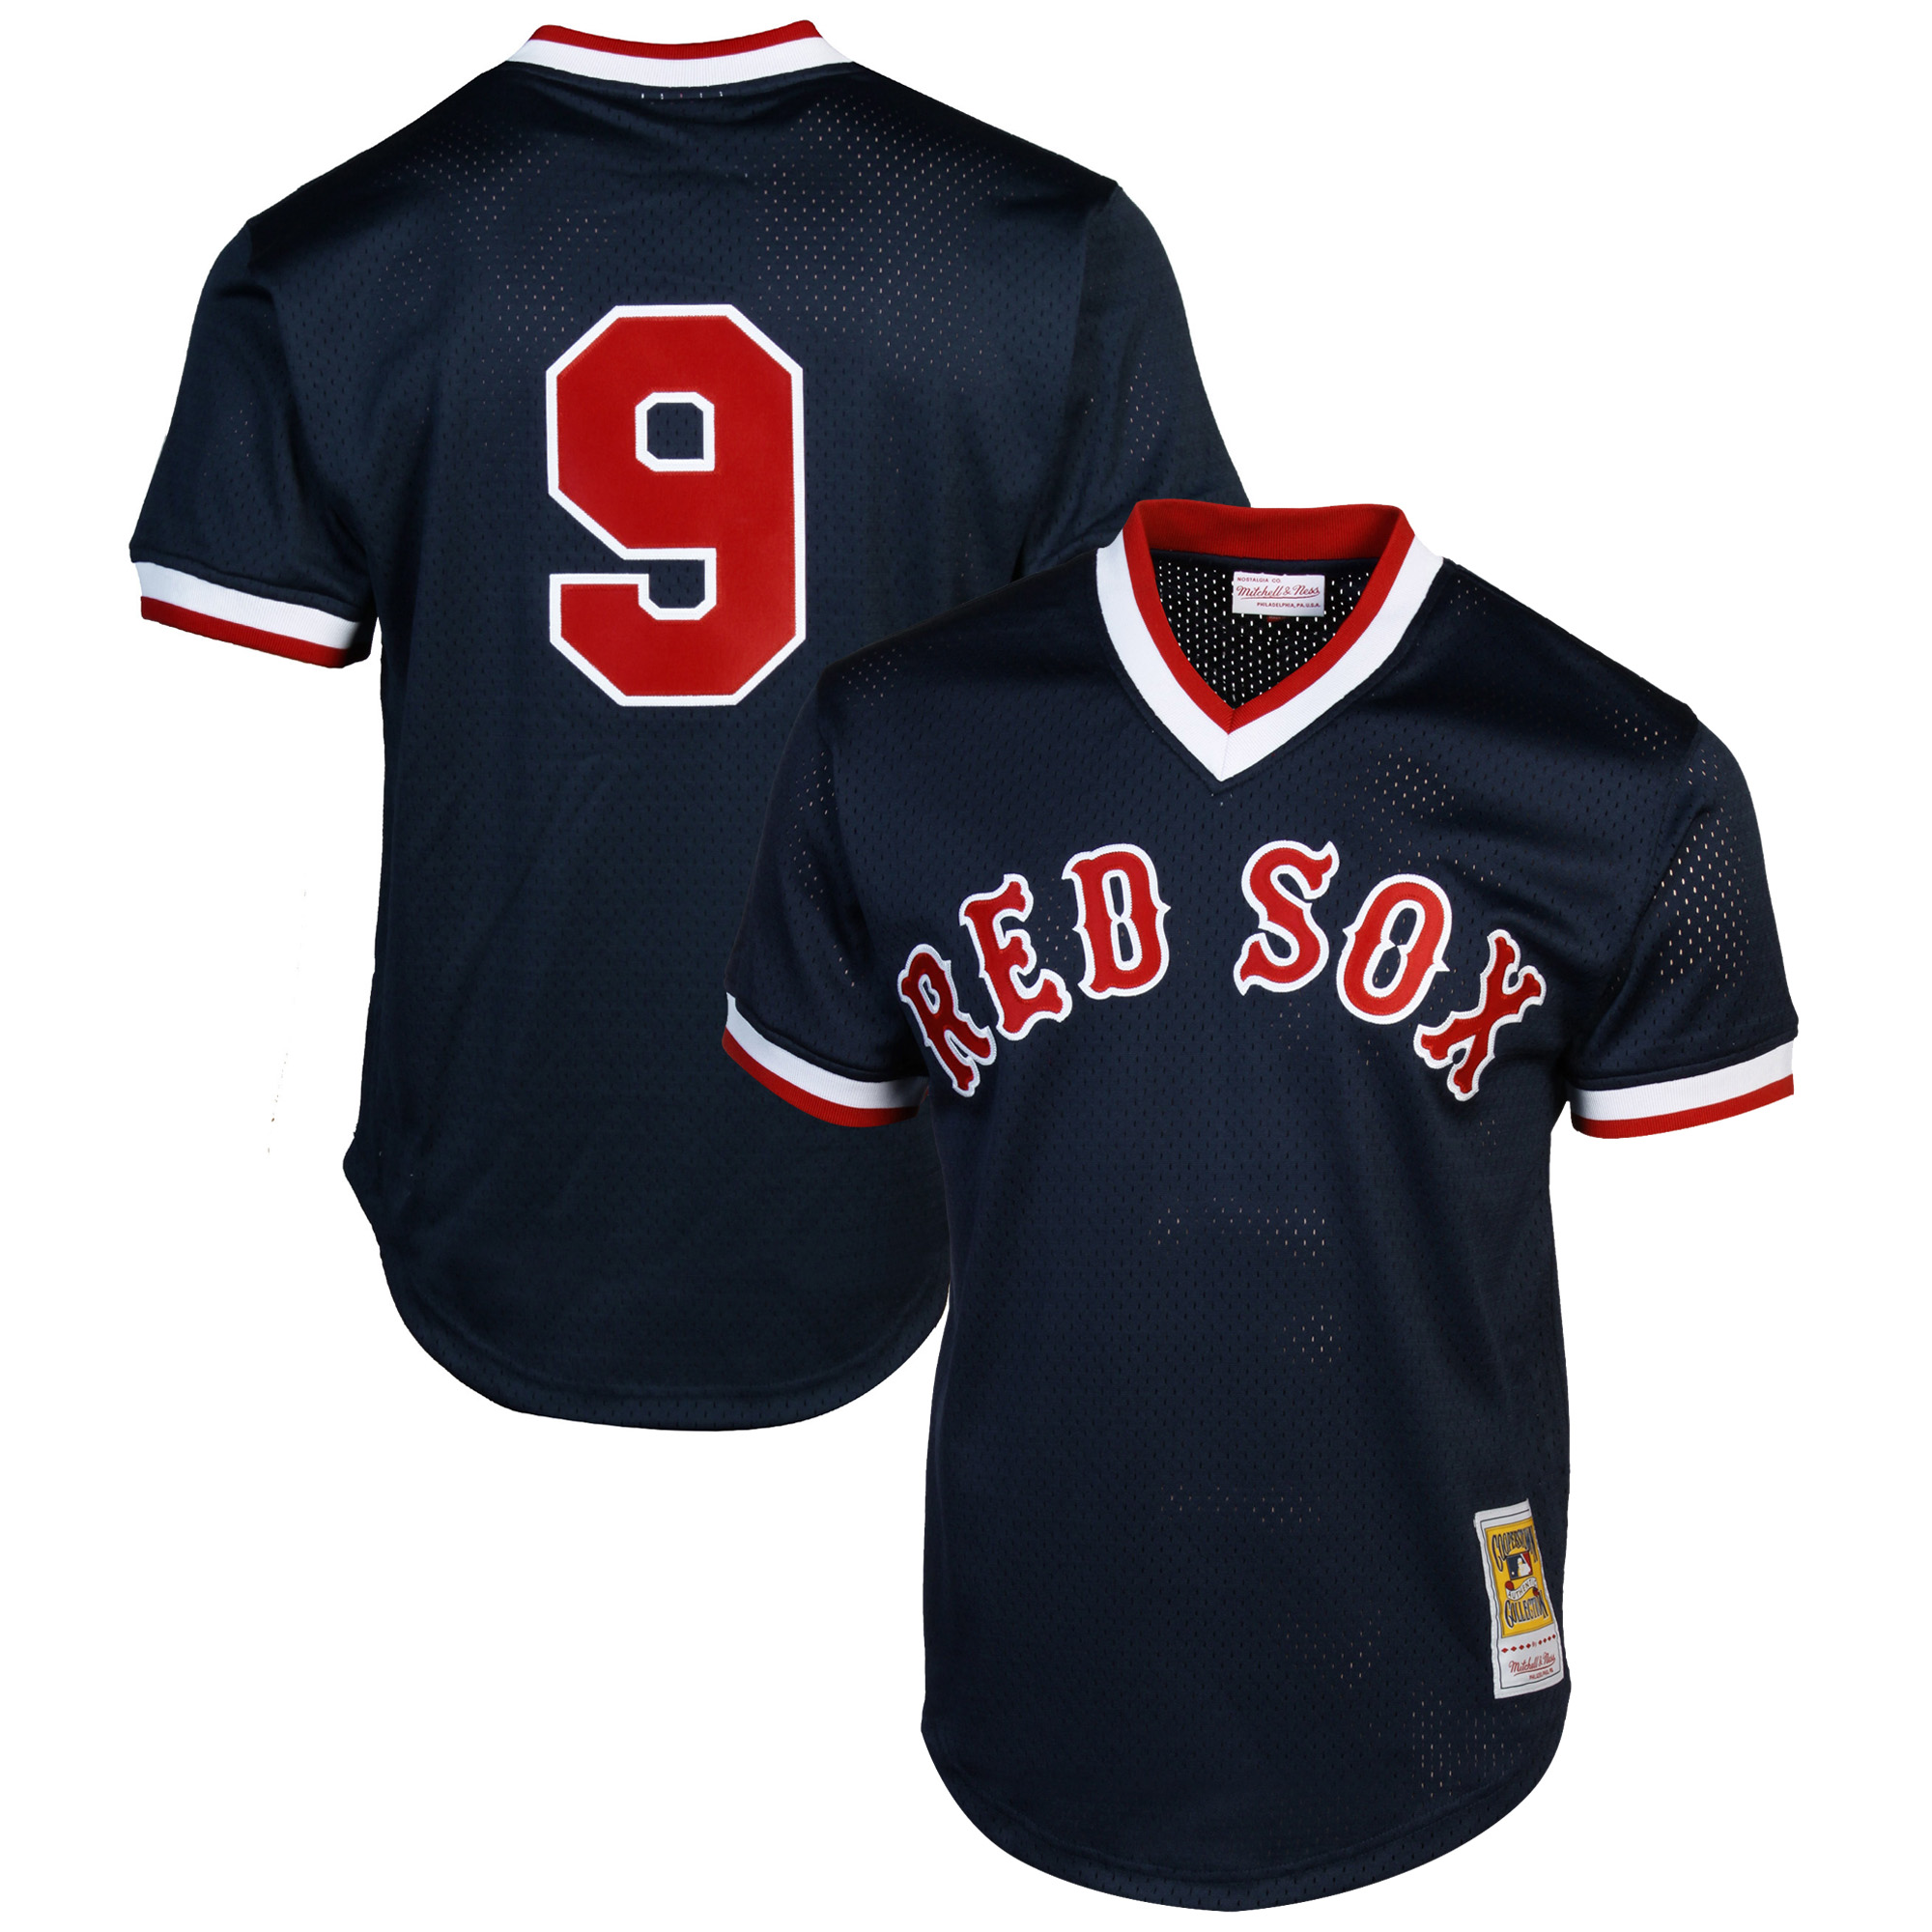 Mitchell & Ness Ted Williams Boston Red Sox 1990 Authentic Cooperstown Collection Batting Practice Jersey - Navy Blue